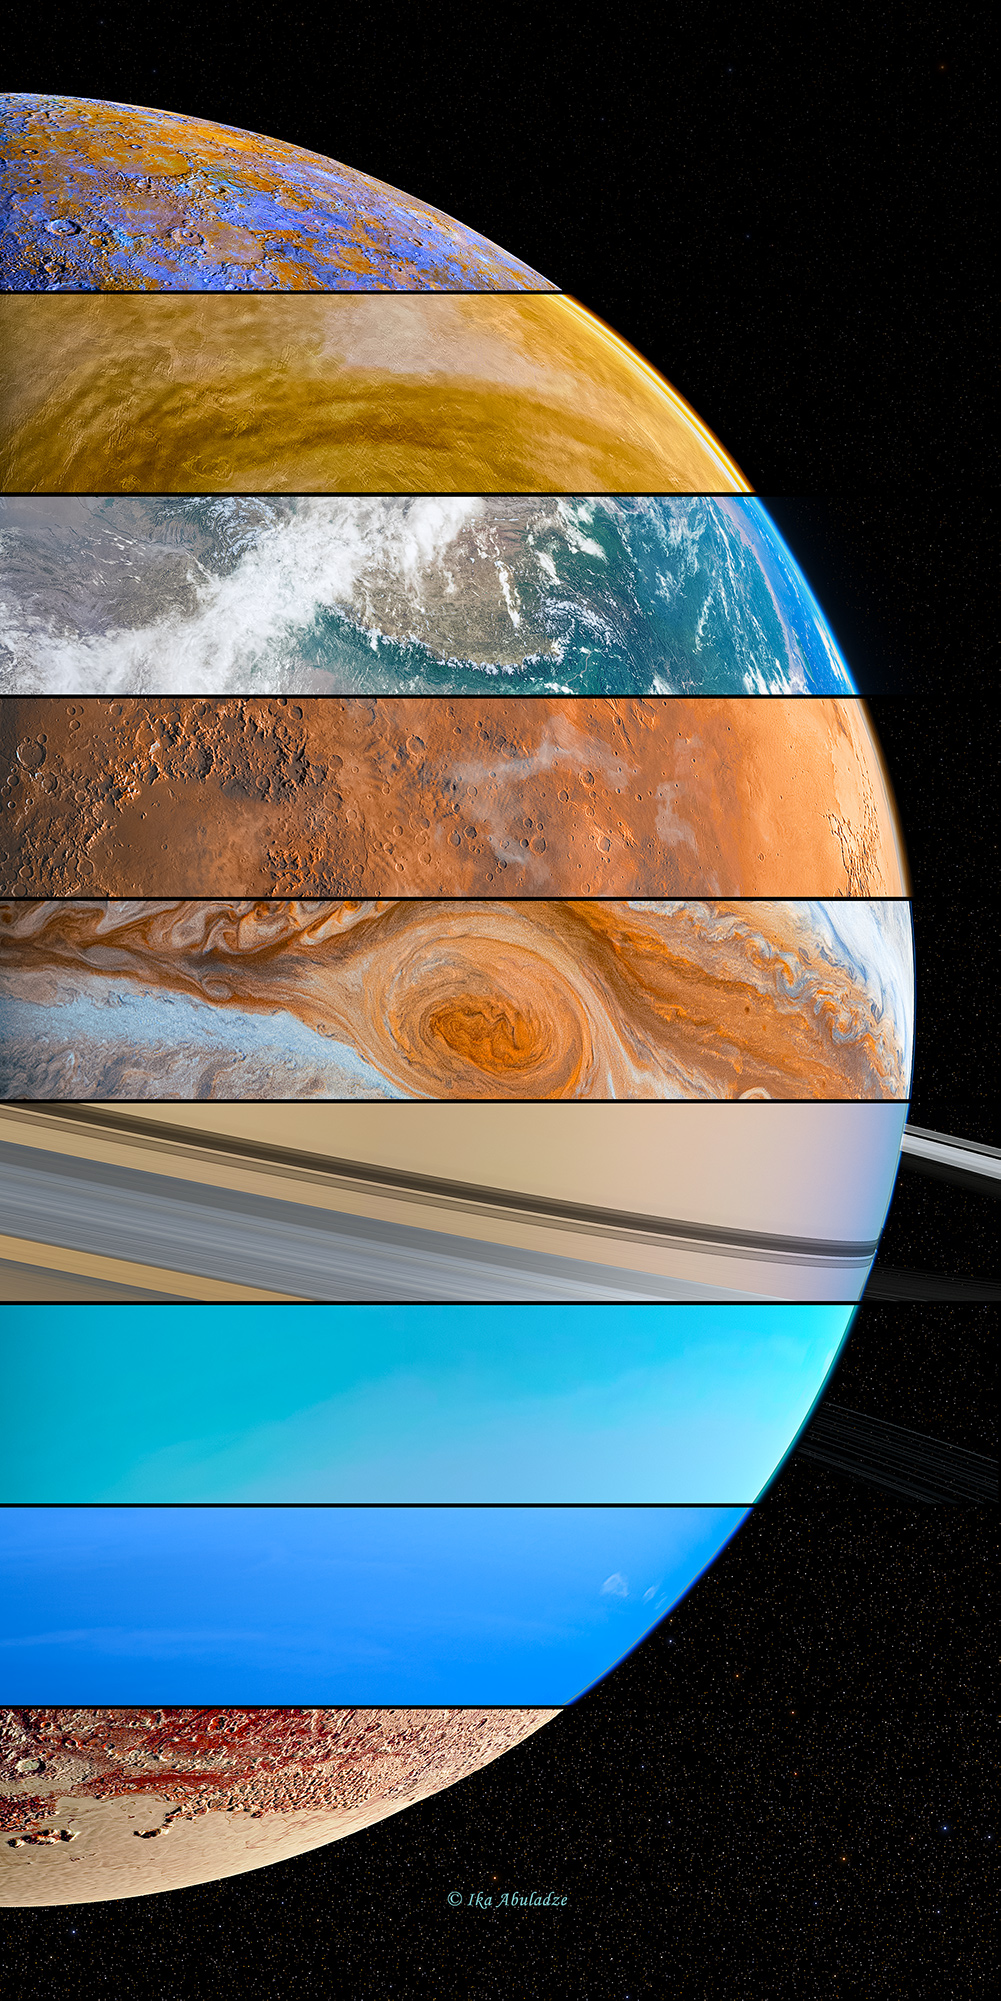 Aligned Planets but this time Pluto is included (4k)